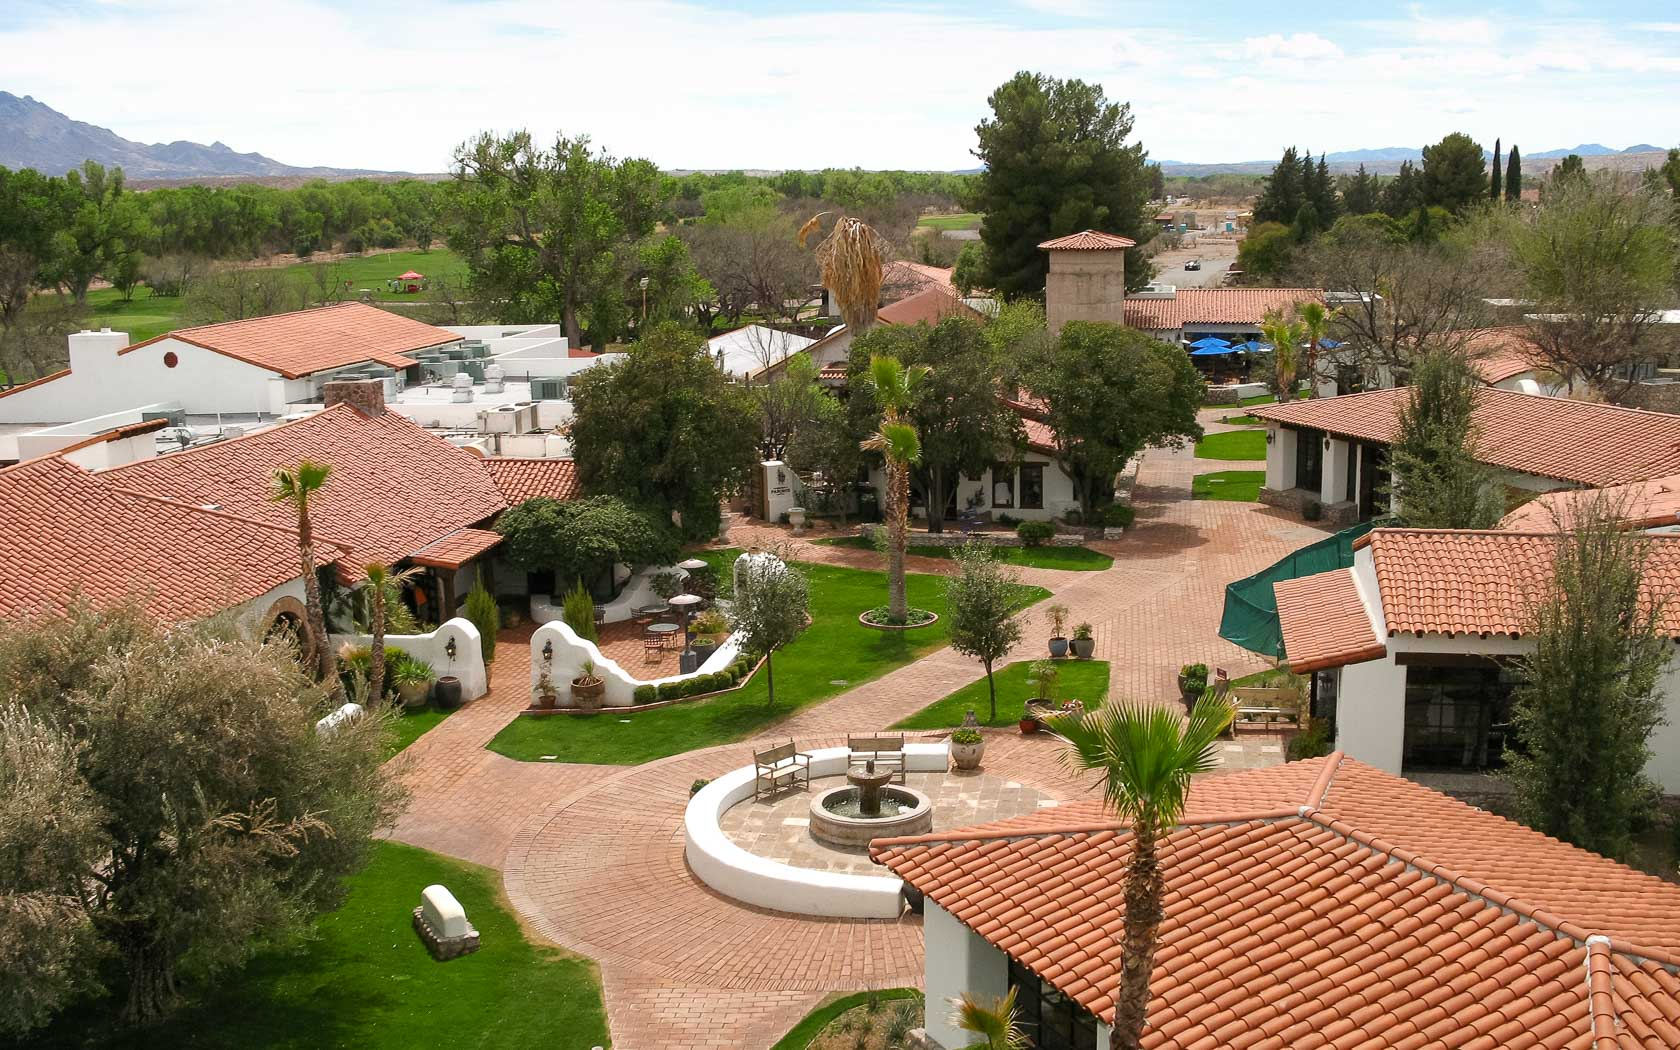 aerial view of property buildings with a fountain in the center